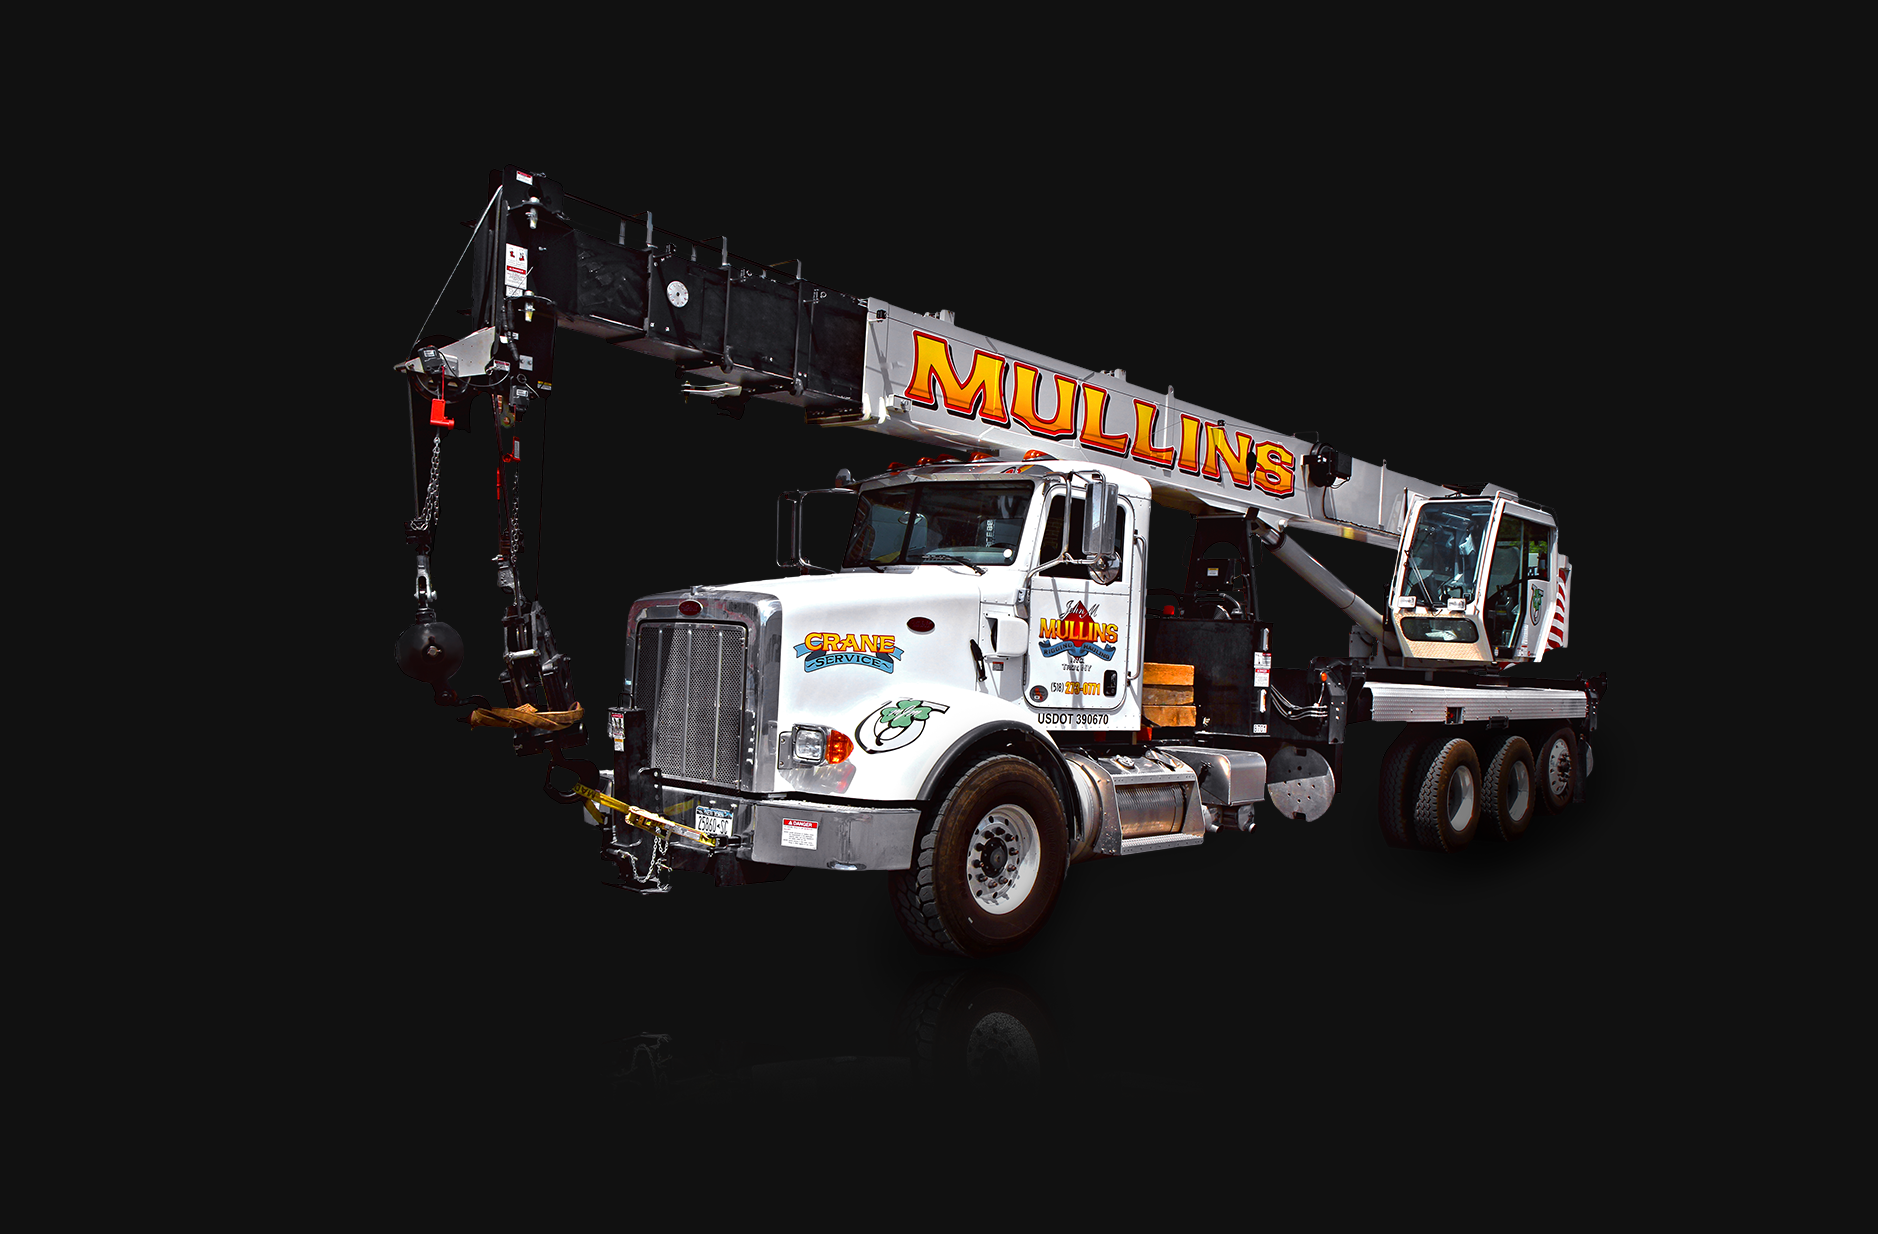 Mullins Rigging Crane 4national NBT45